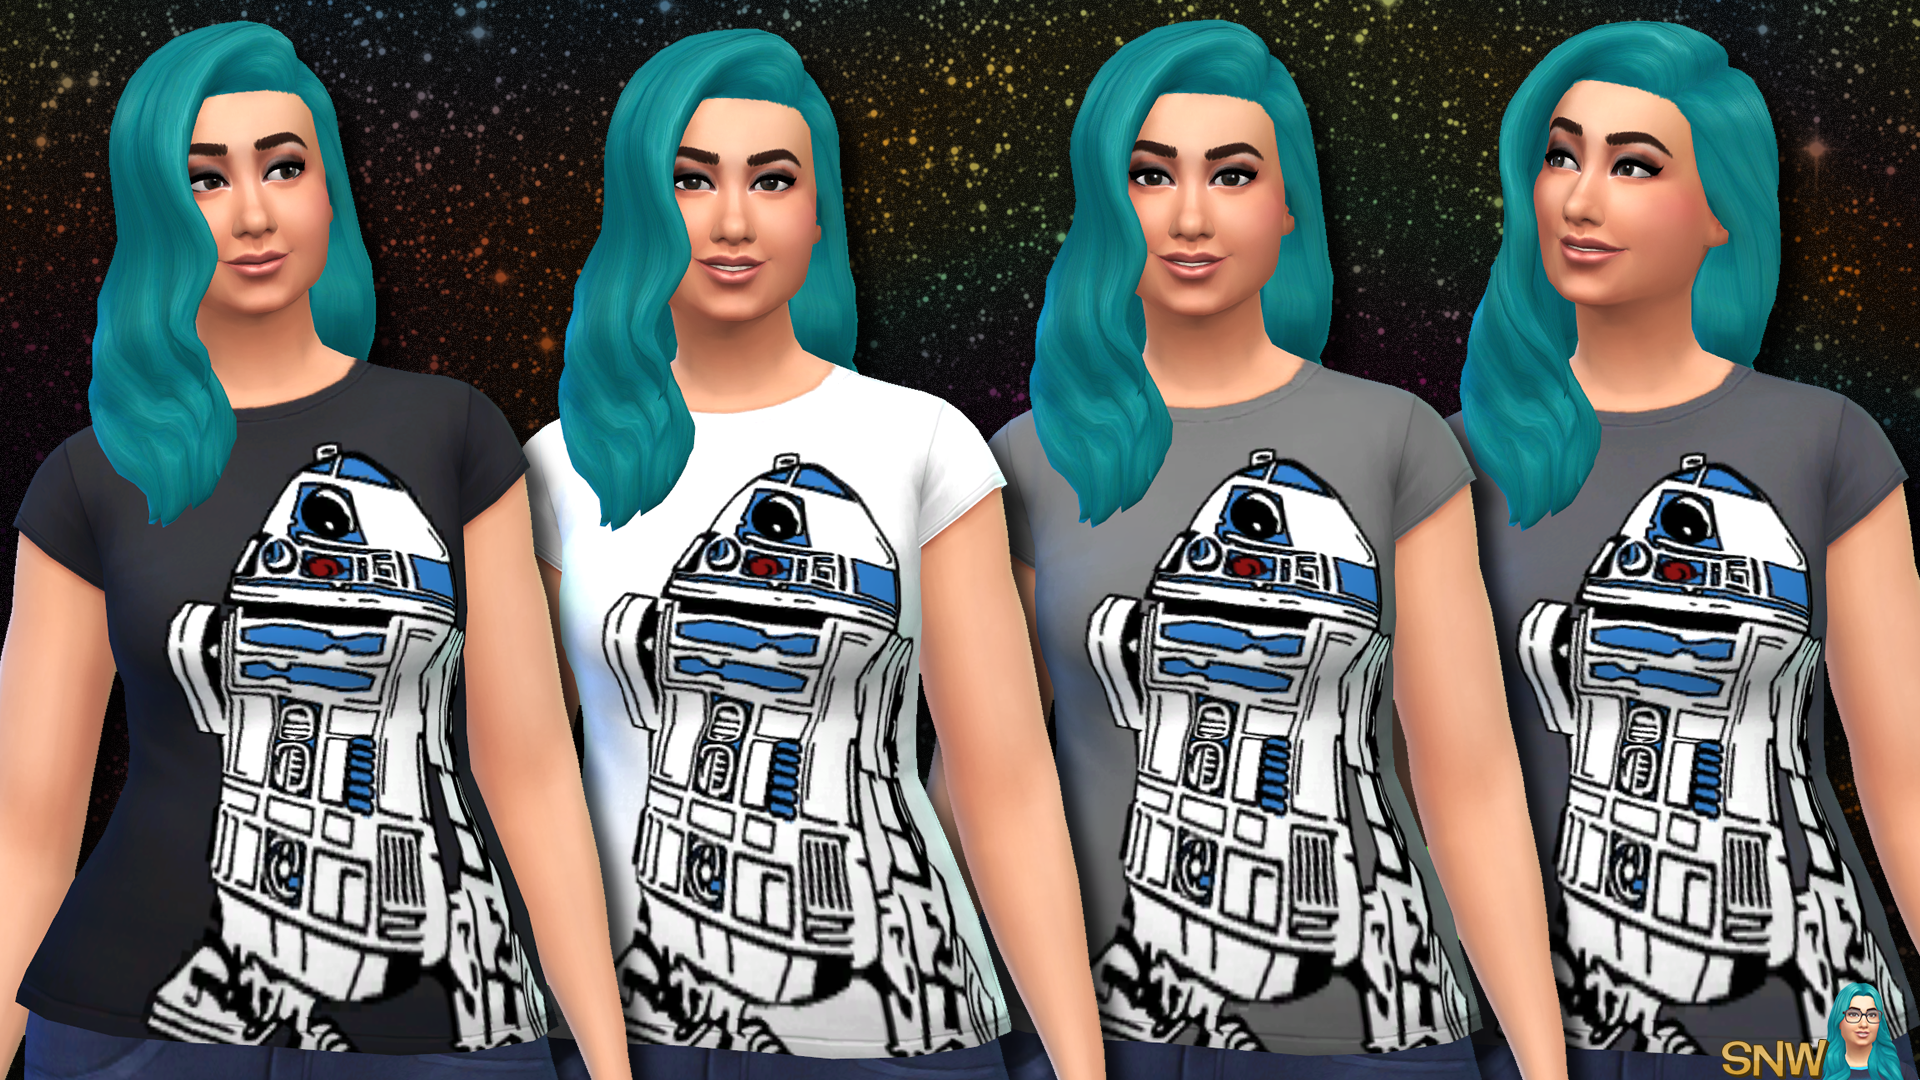 Star Wars R2-D2 Shirts for Women